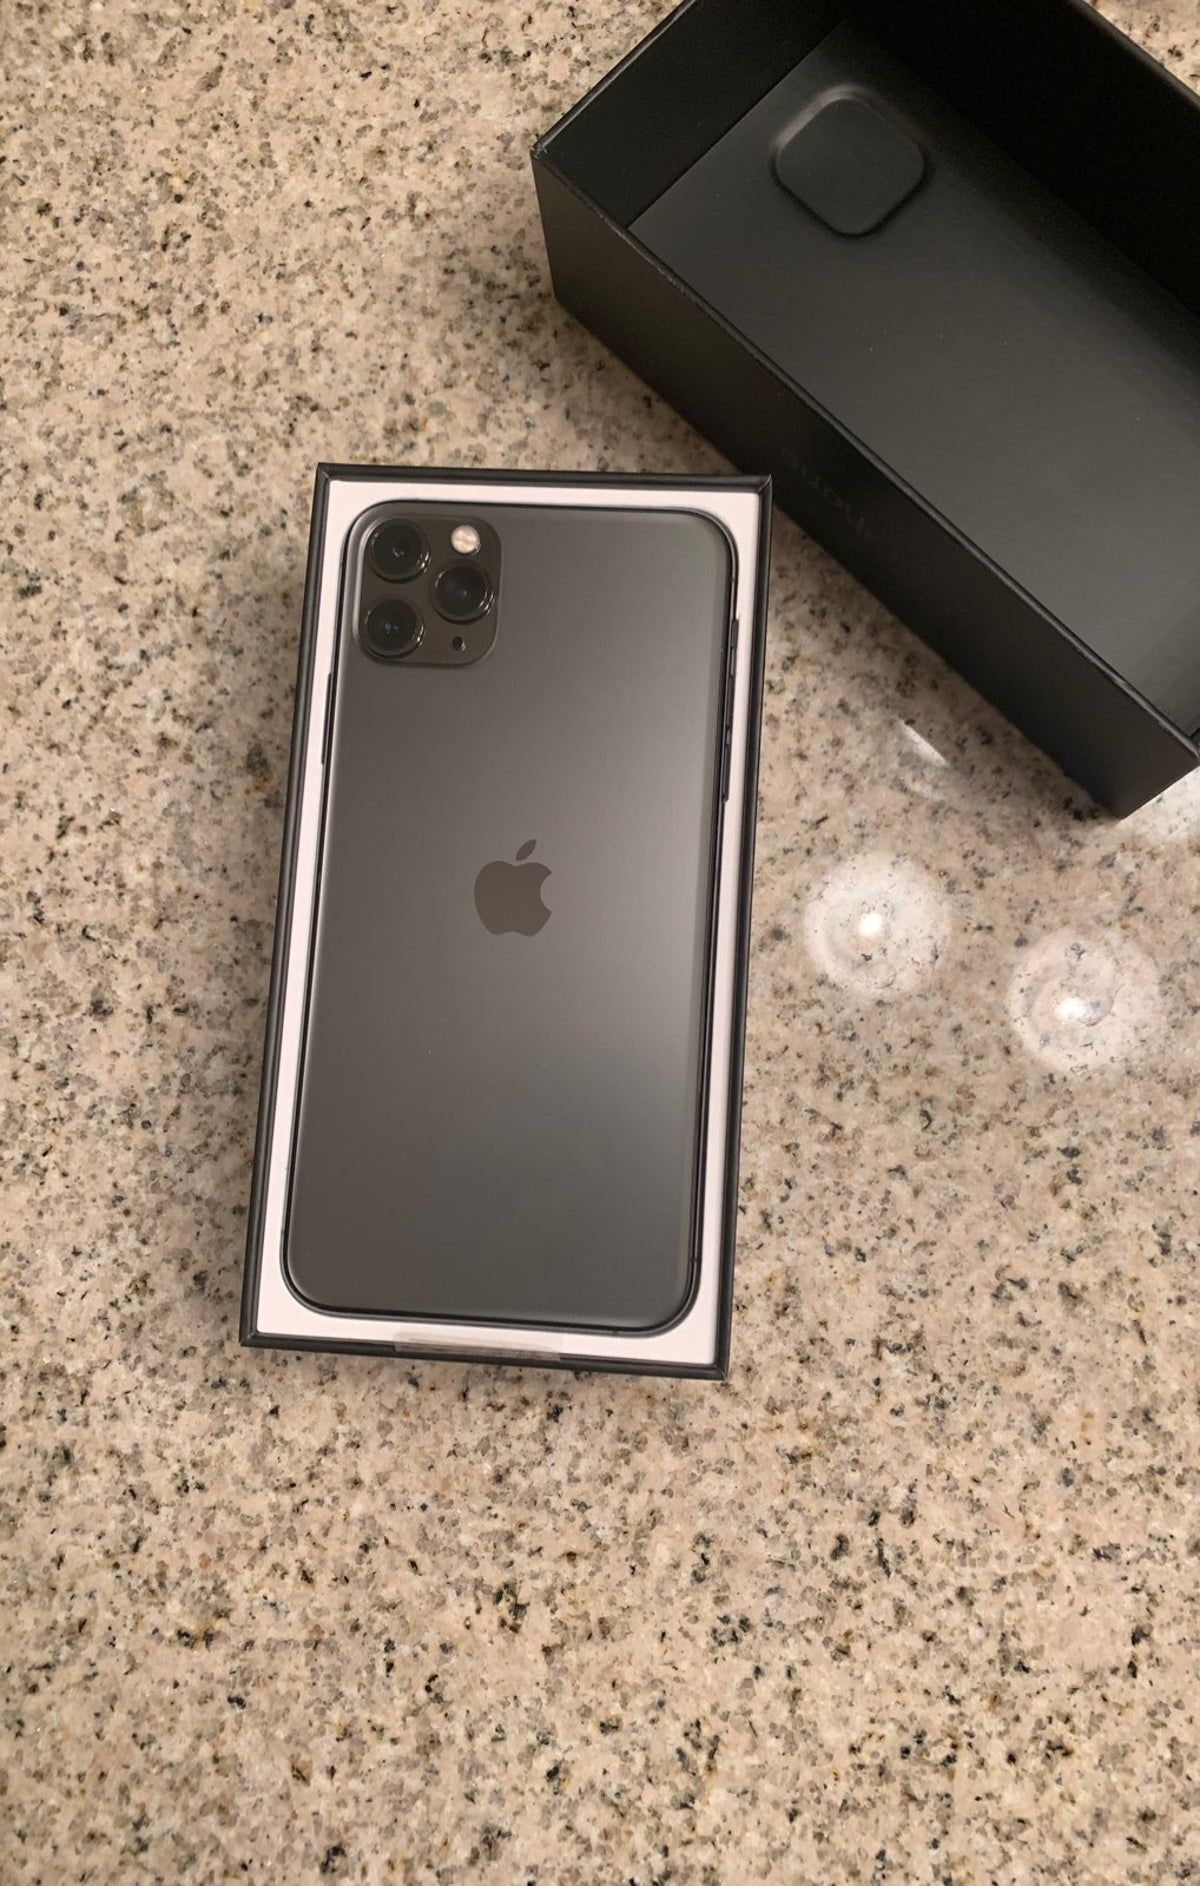 Iphone 11 Pro Max Space Gray 256 Gb Iphone Iphone Essential Apple Smartphone